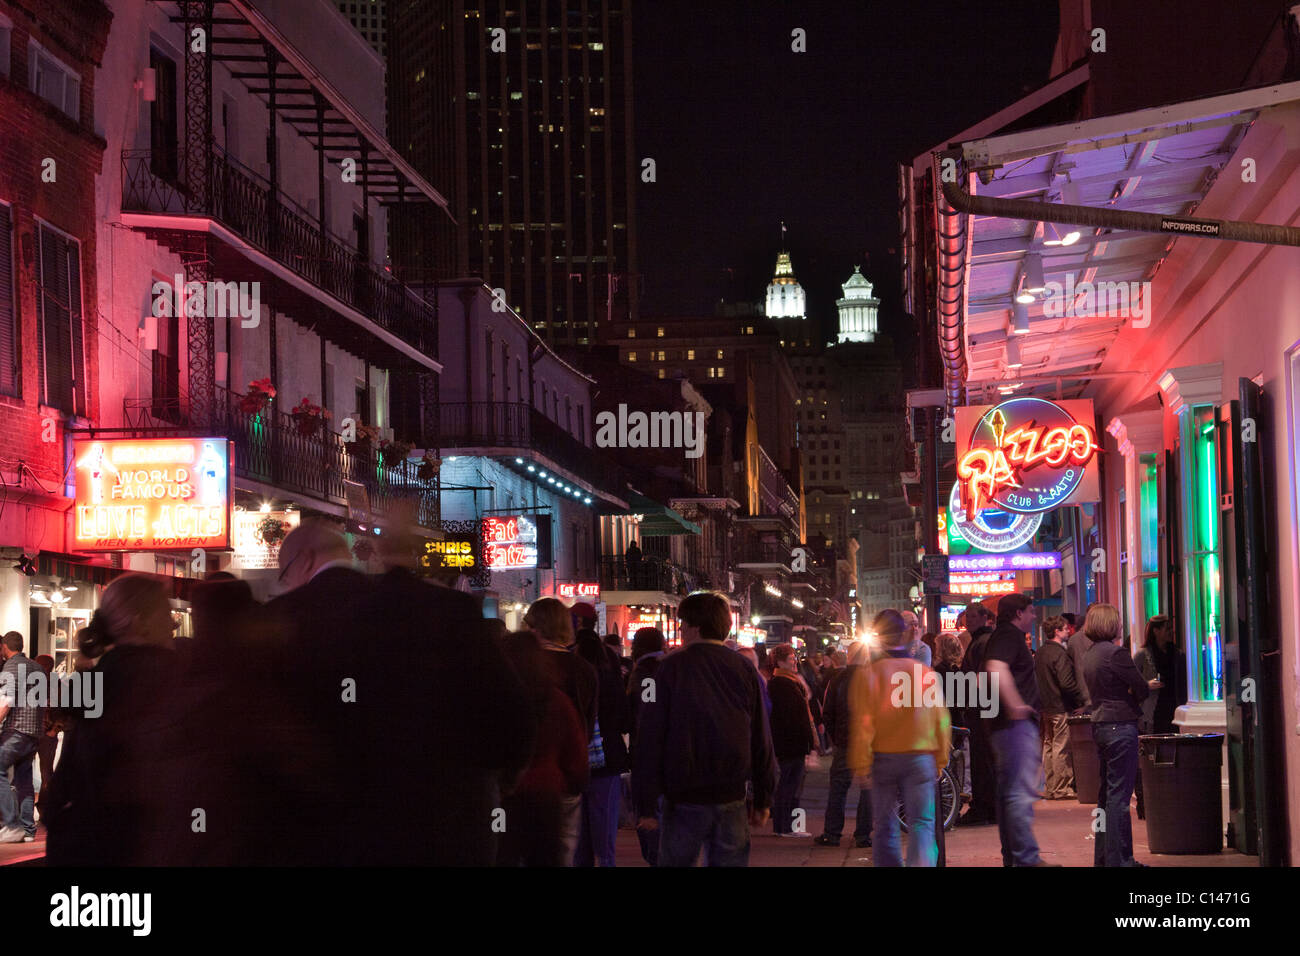 People walking along Bourbon Street in New Orleans with neon signs at night - Stock Image